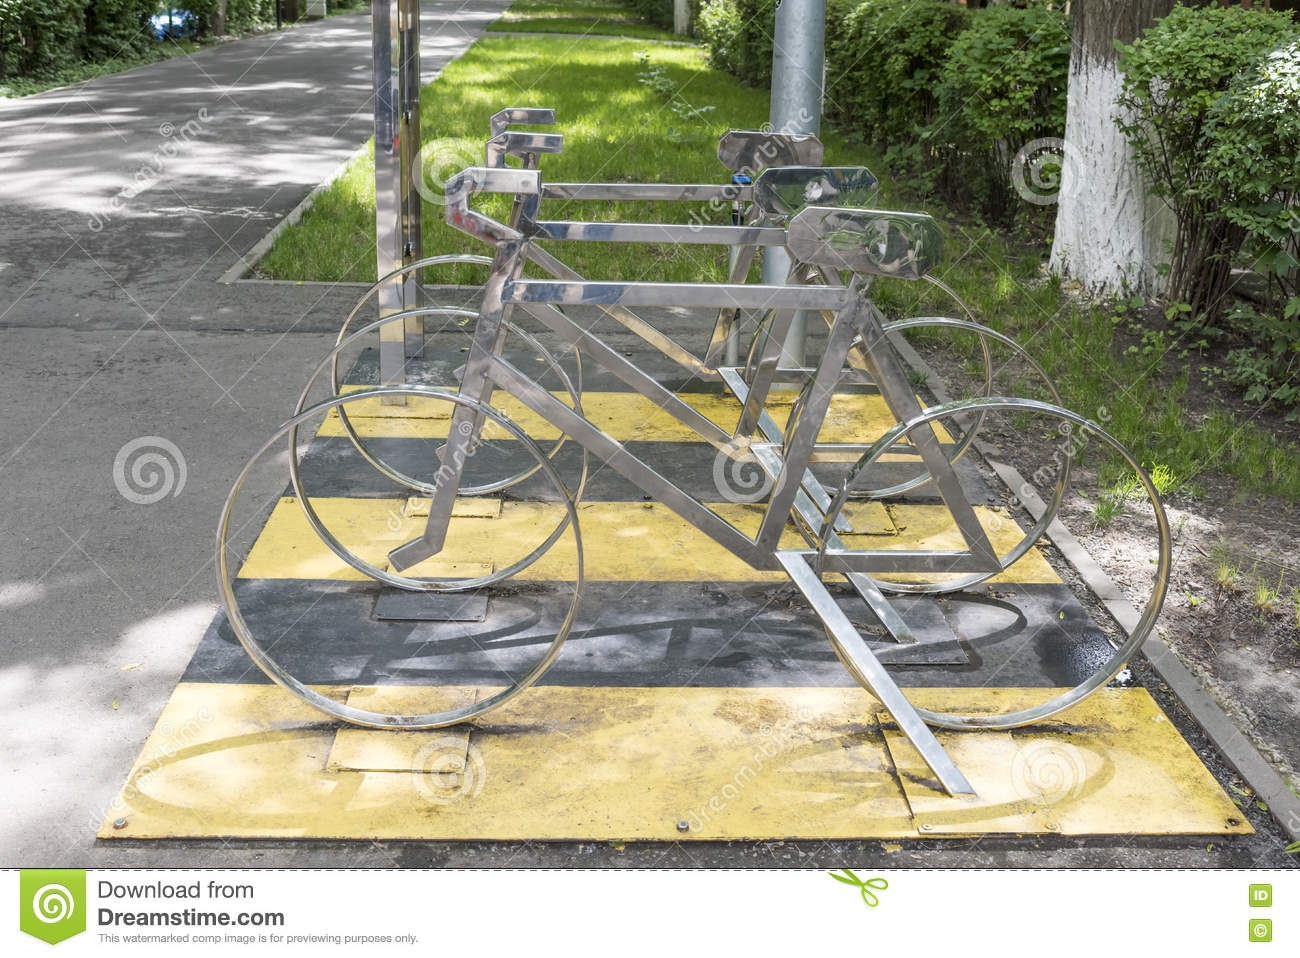 Layouts Bicycle In The Parking Lot Stock Photo Image 73471263. Parking Layouts